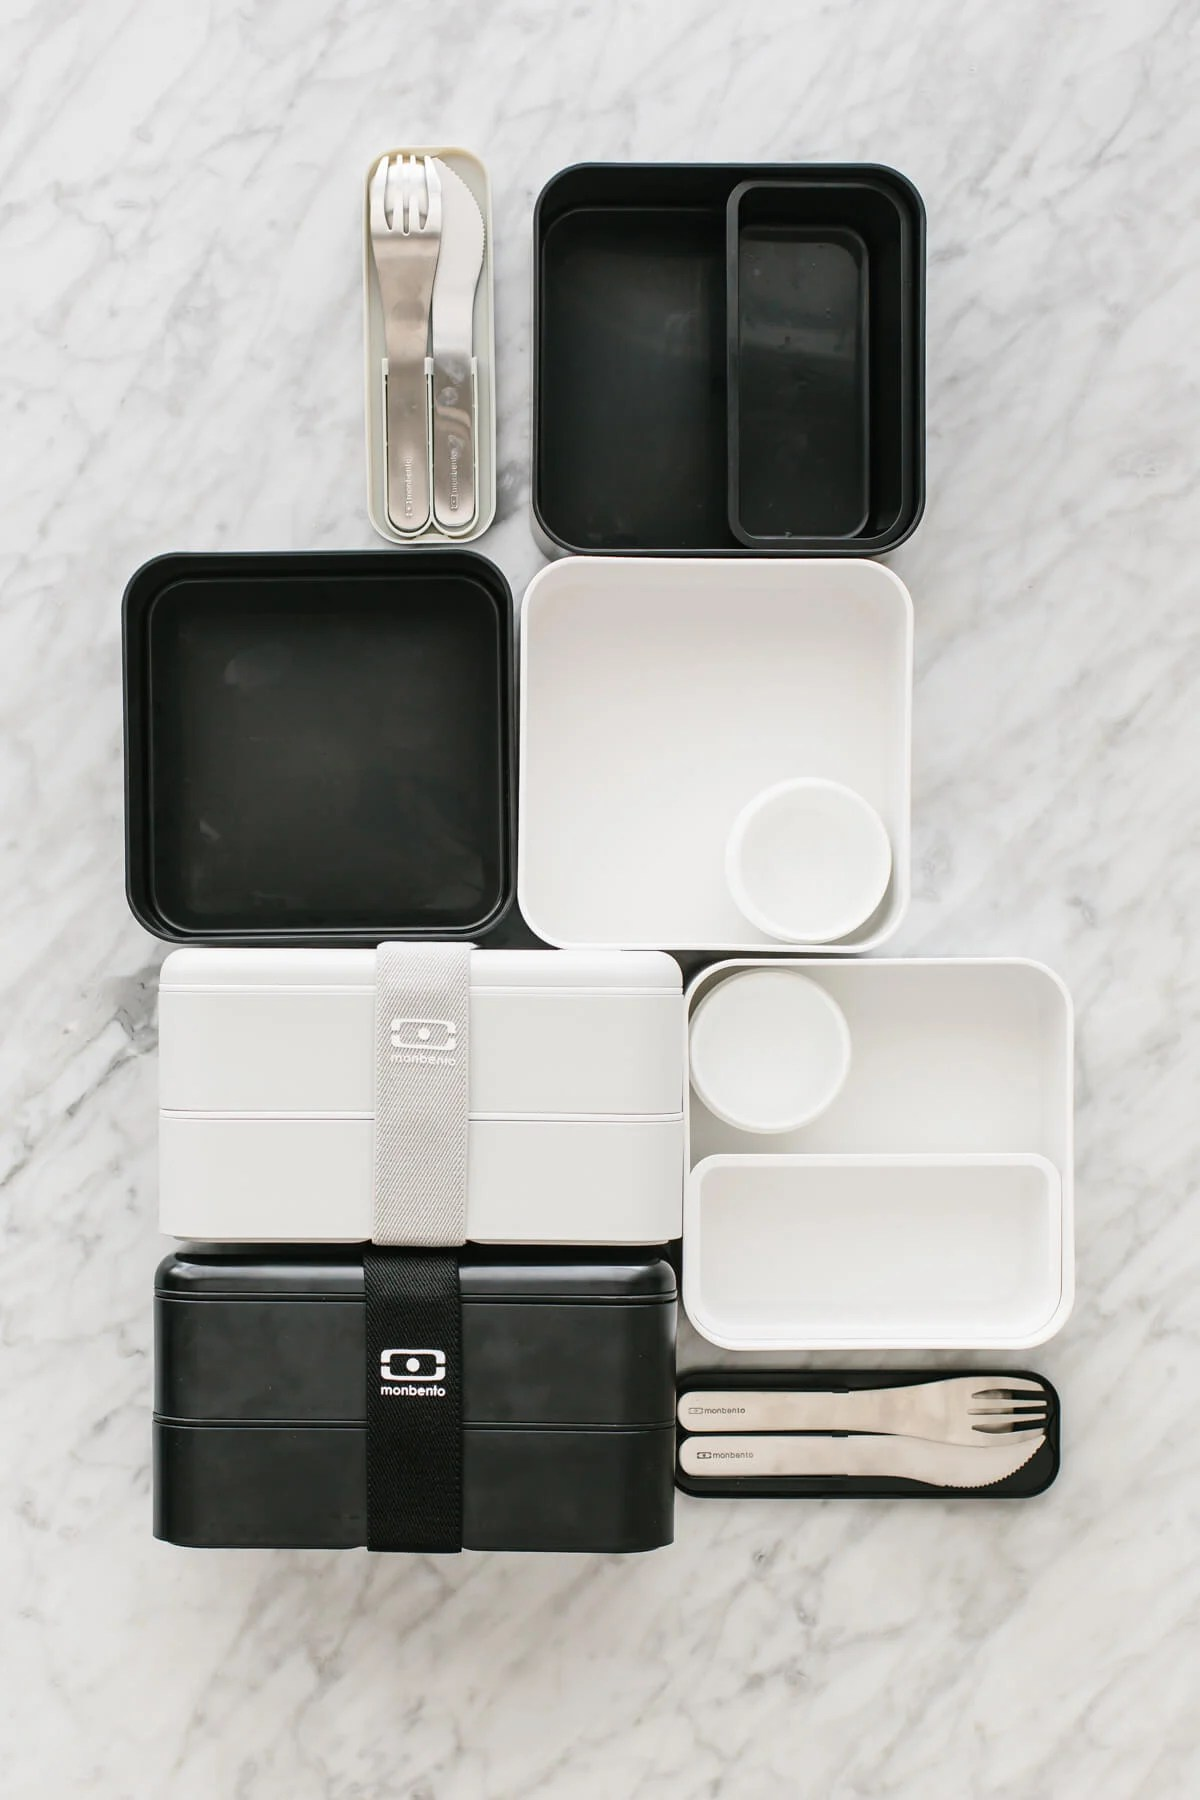 A bunch of empty bento box containers on a countertop.